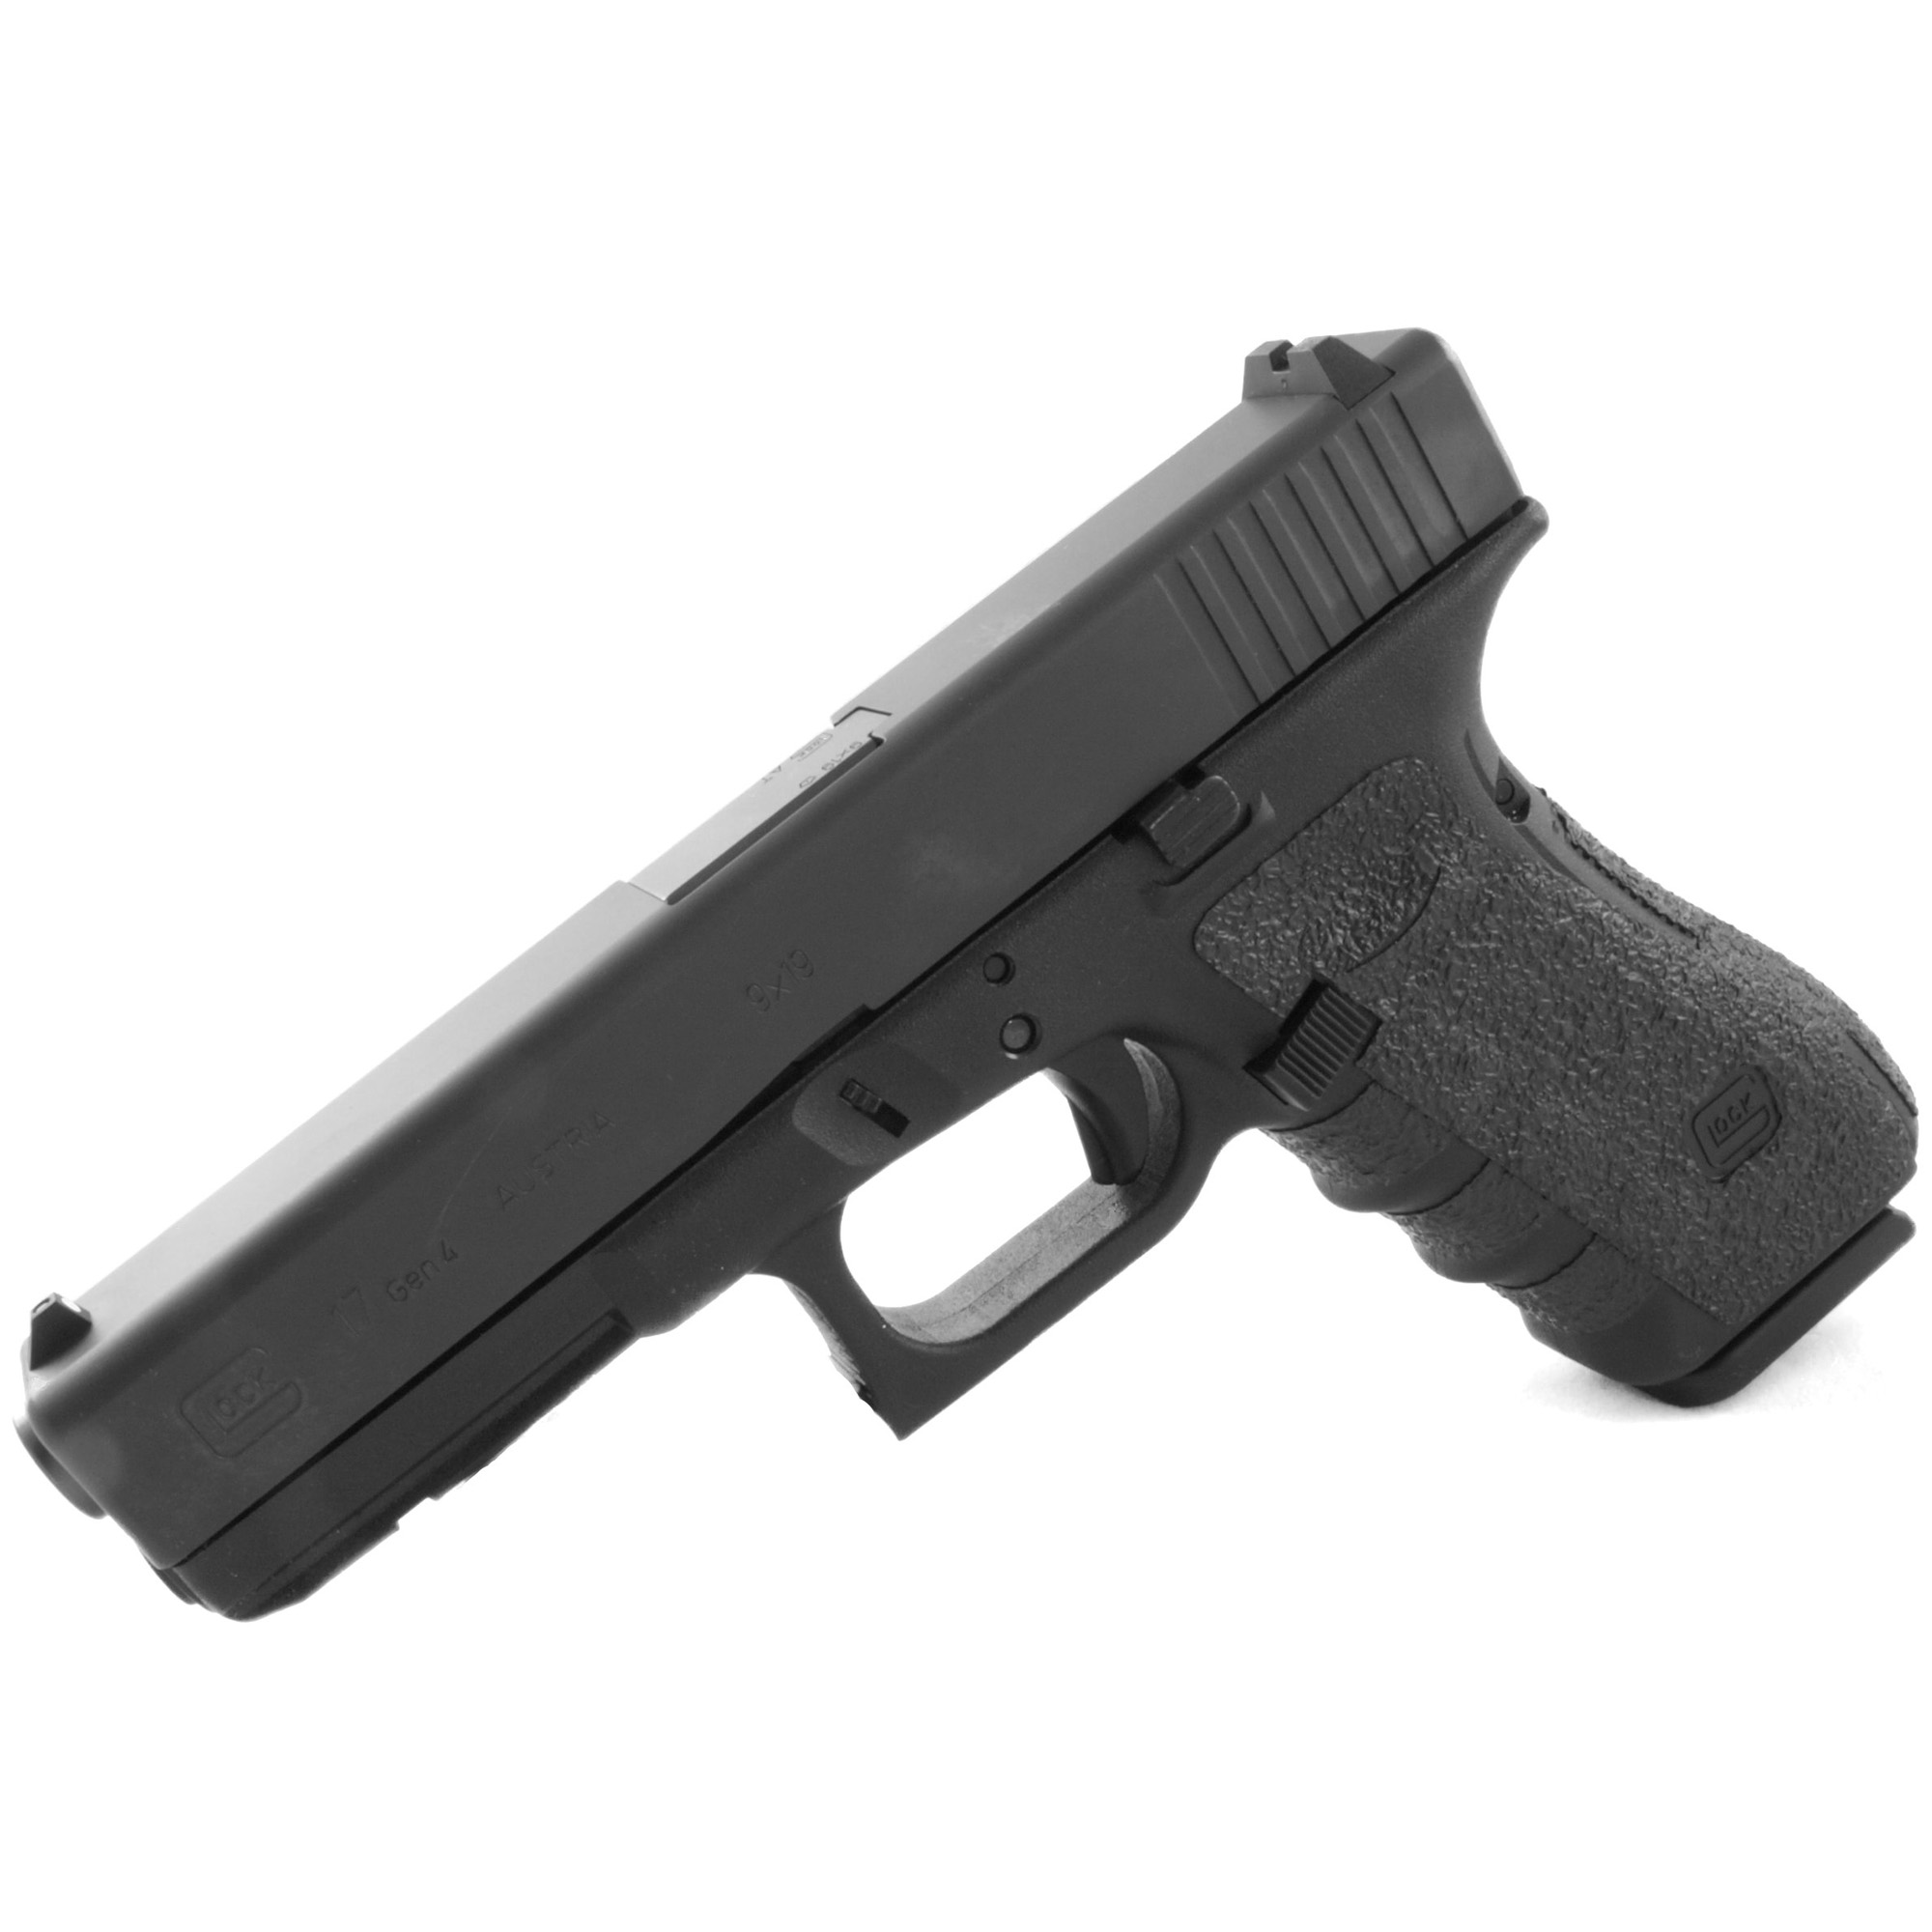 """TALON Grips for Glock Gen 4 Model 17"""" 22"""" 24"""" 31"""" 34"""" 35"""" and 37 with a Medium Backstrap. This rear wrap grip is in the rubber texture. This grip provides full coverage on the side panels including above the thumb rest"""" ample coverage on the backstrap"""" and three finger wraps for the finger groves under the trigger guard. This grip has a logo cutout for the Glock emblem on the left side of the handle. This grip sticks extremely well even with the Rough Textured Frame (RTF). The medium backstrap will fit both the medium and the medium beavertail backstrap."""